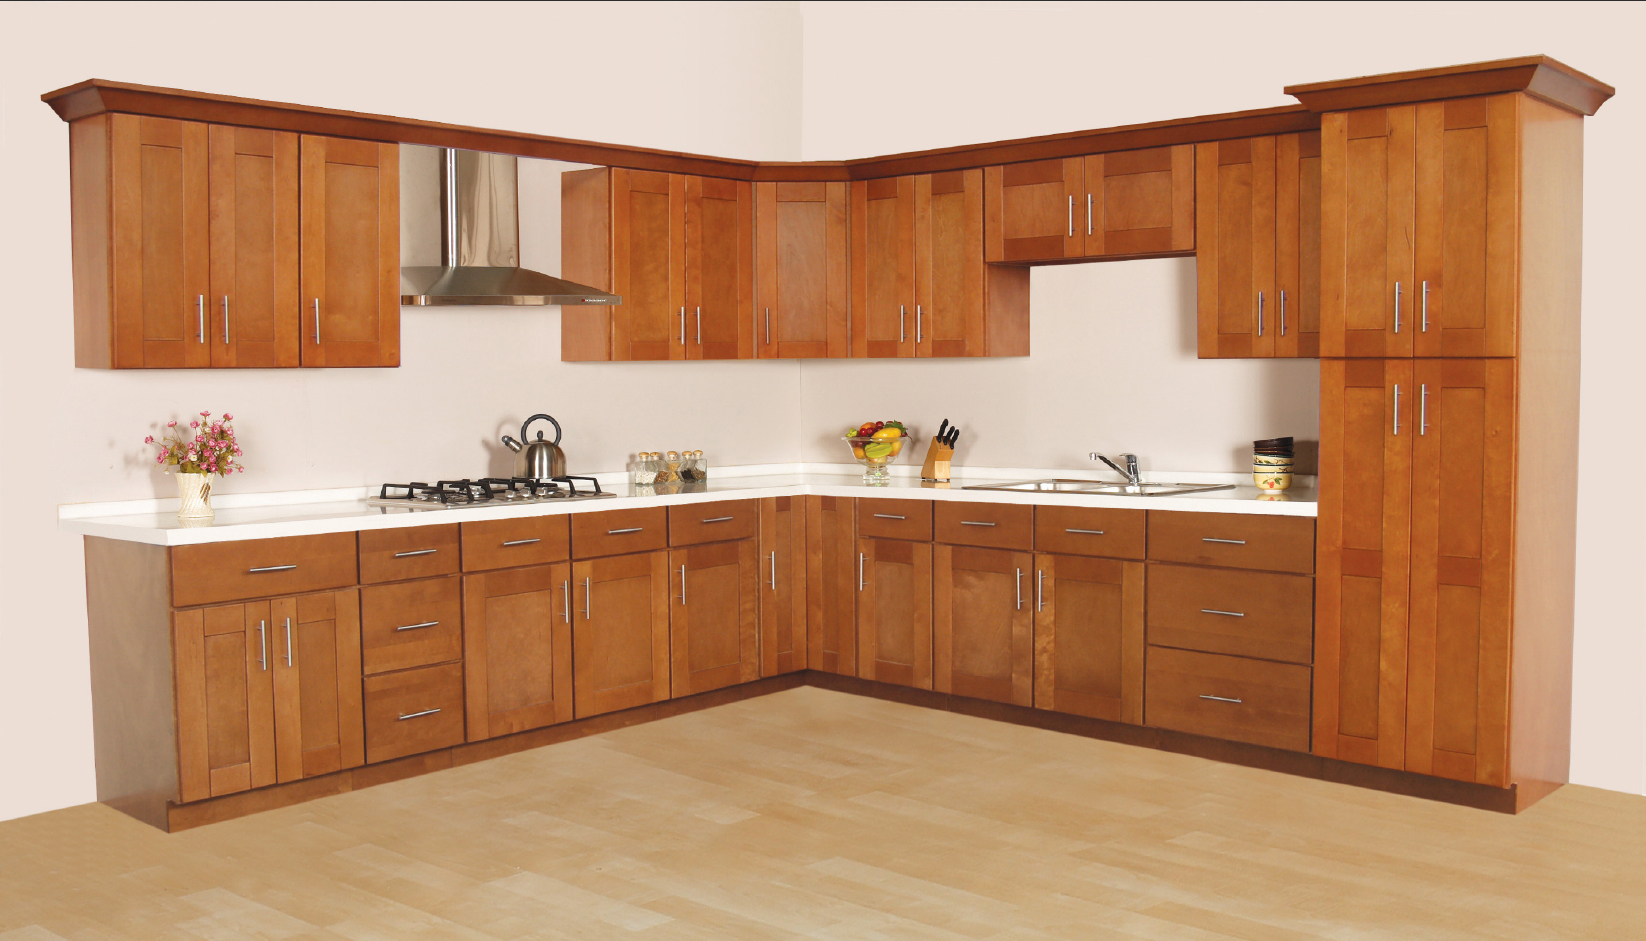 Menards kitchen cabinet price and details home and for Tall kitchen cabinets